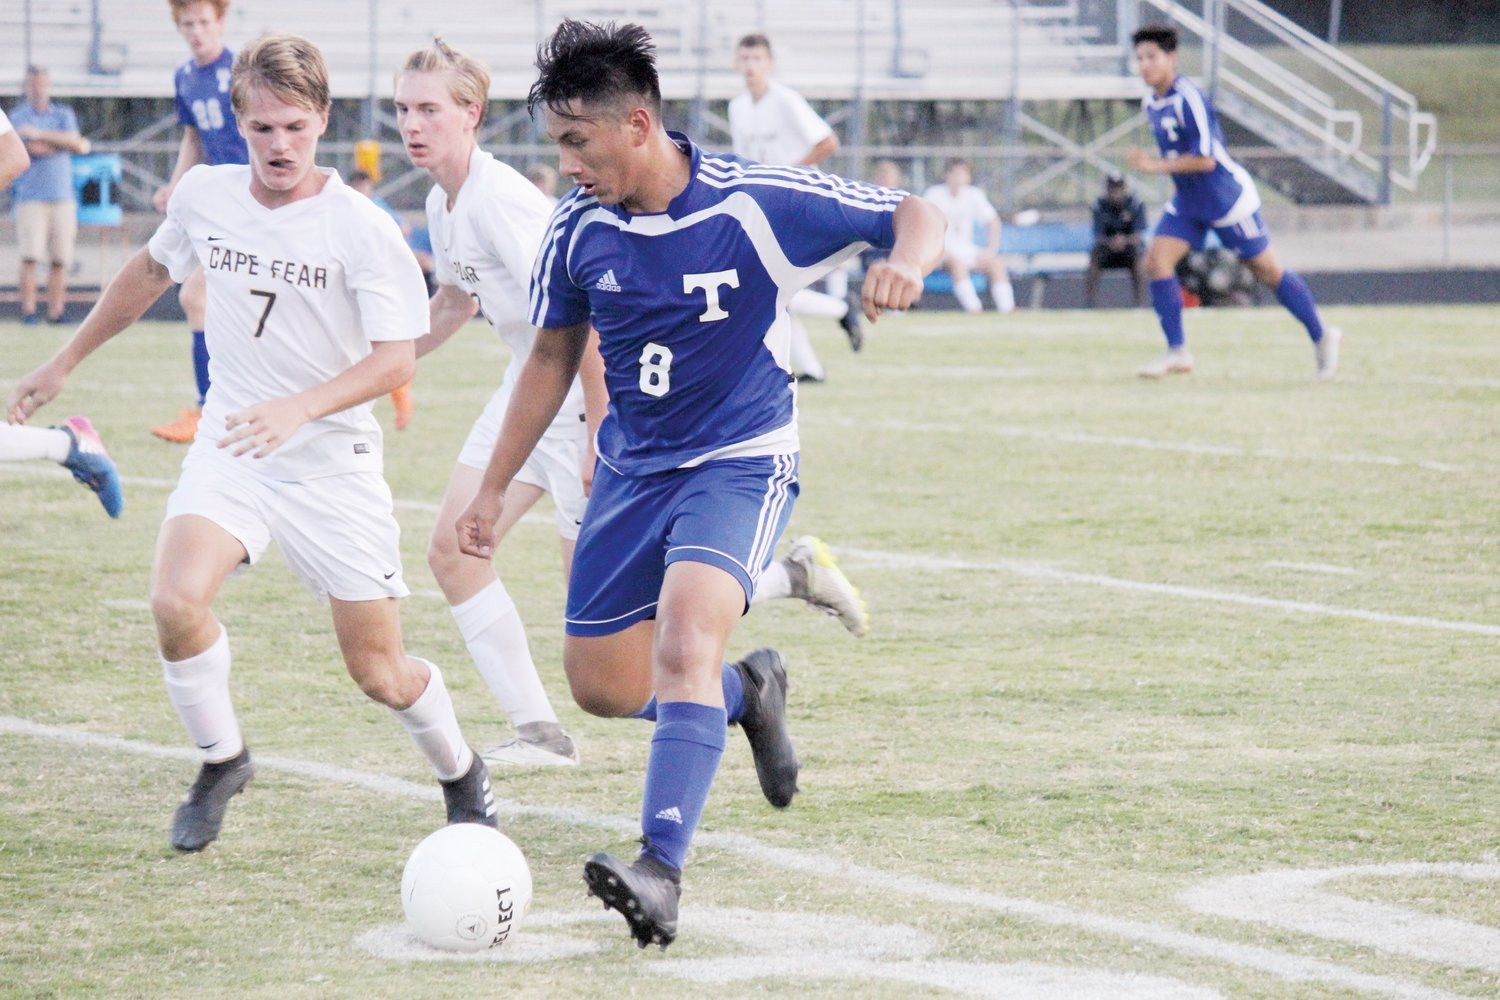 Triton's Kevin Paz dribbles up the pitch in an earlier win against Cape Fear. Paz scored two goals in Monday's 4-1 win on the road against rival Harnett Central.